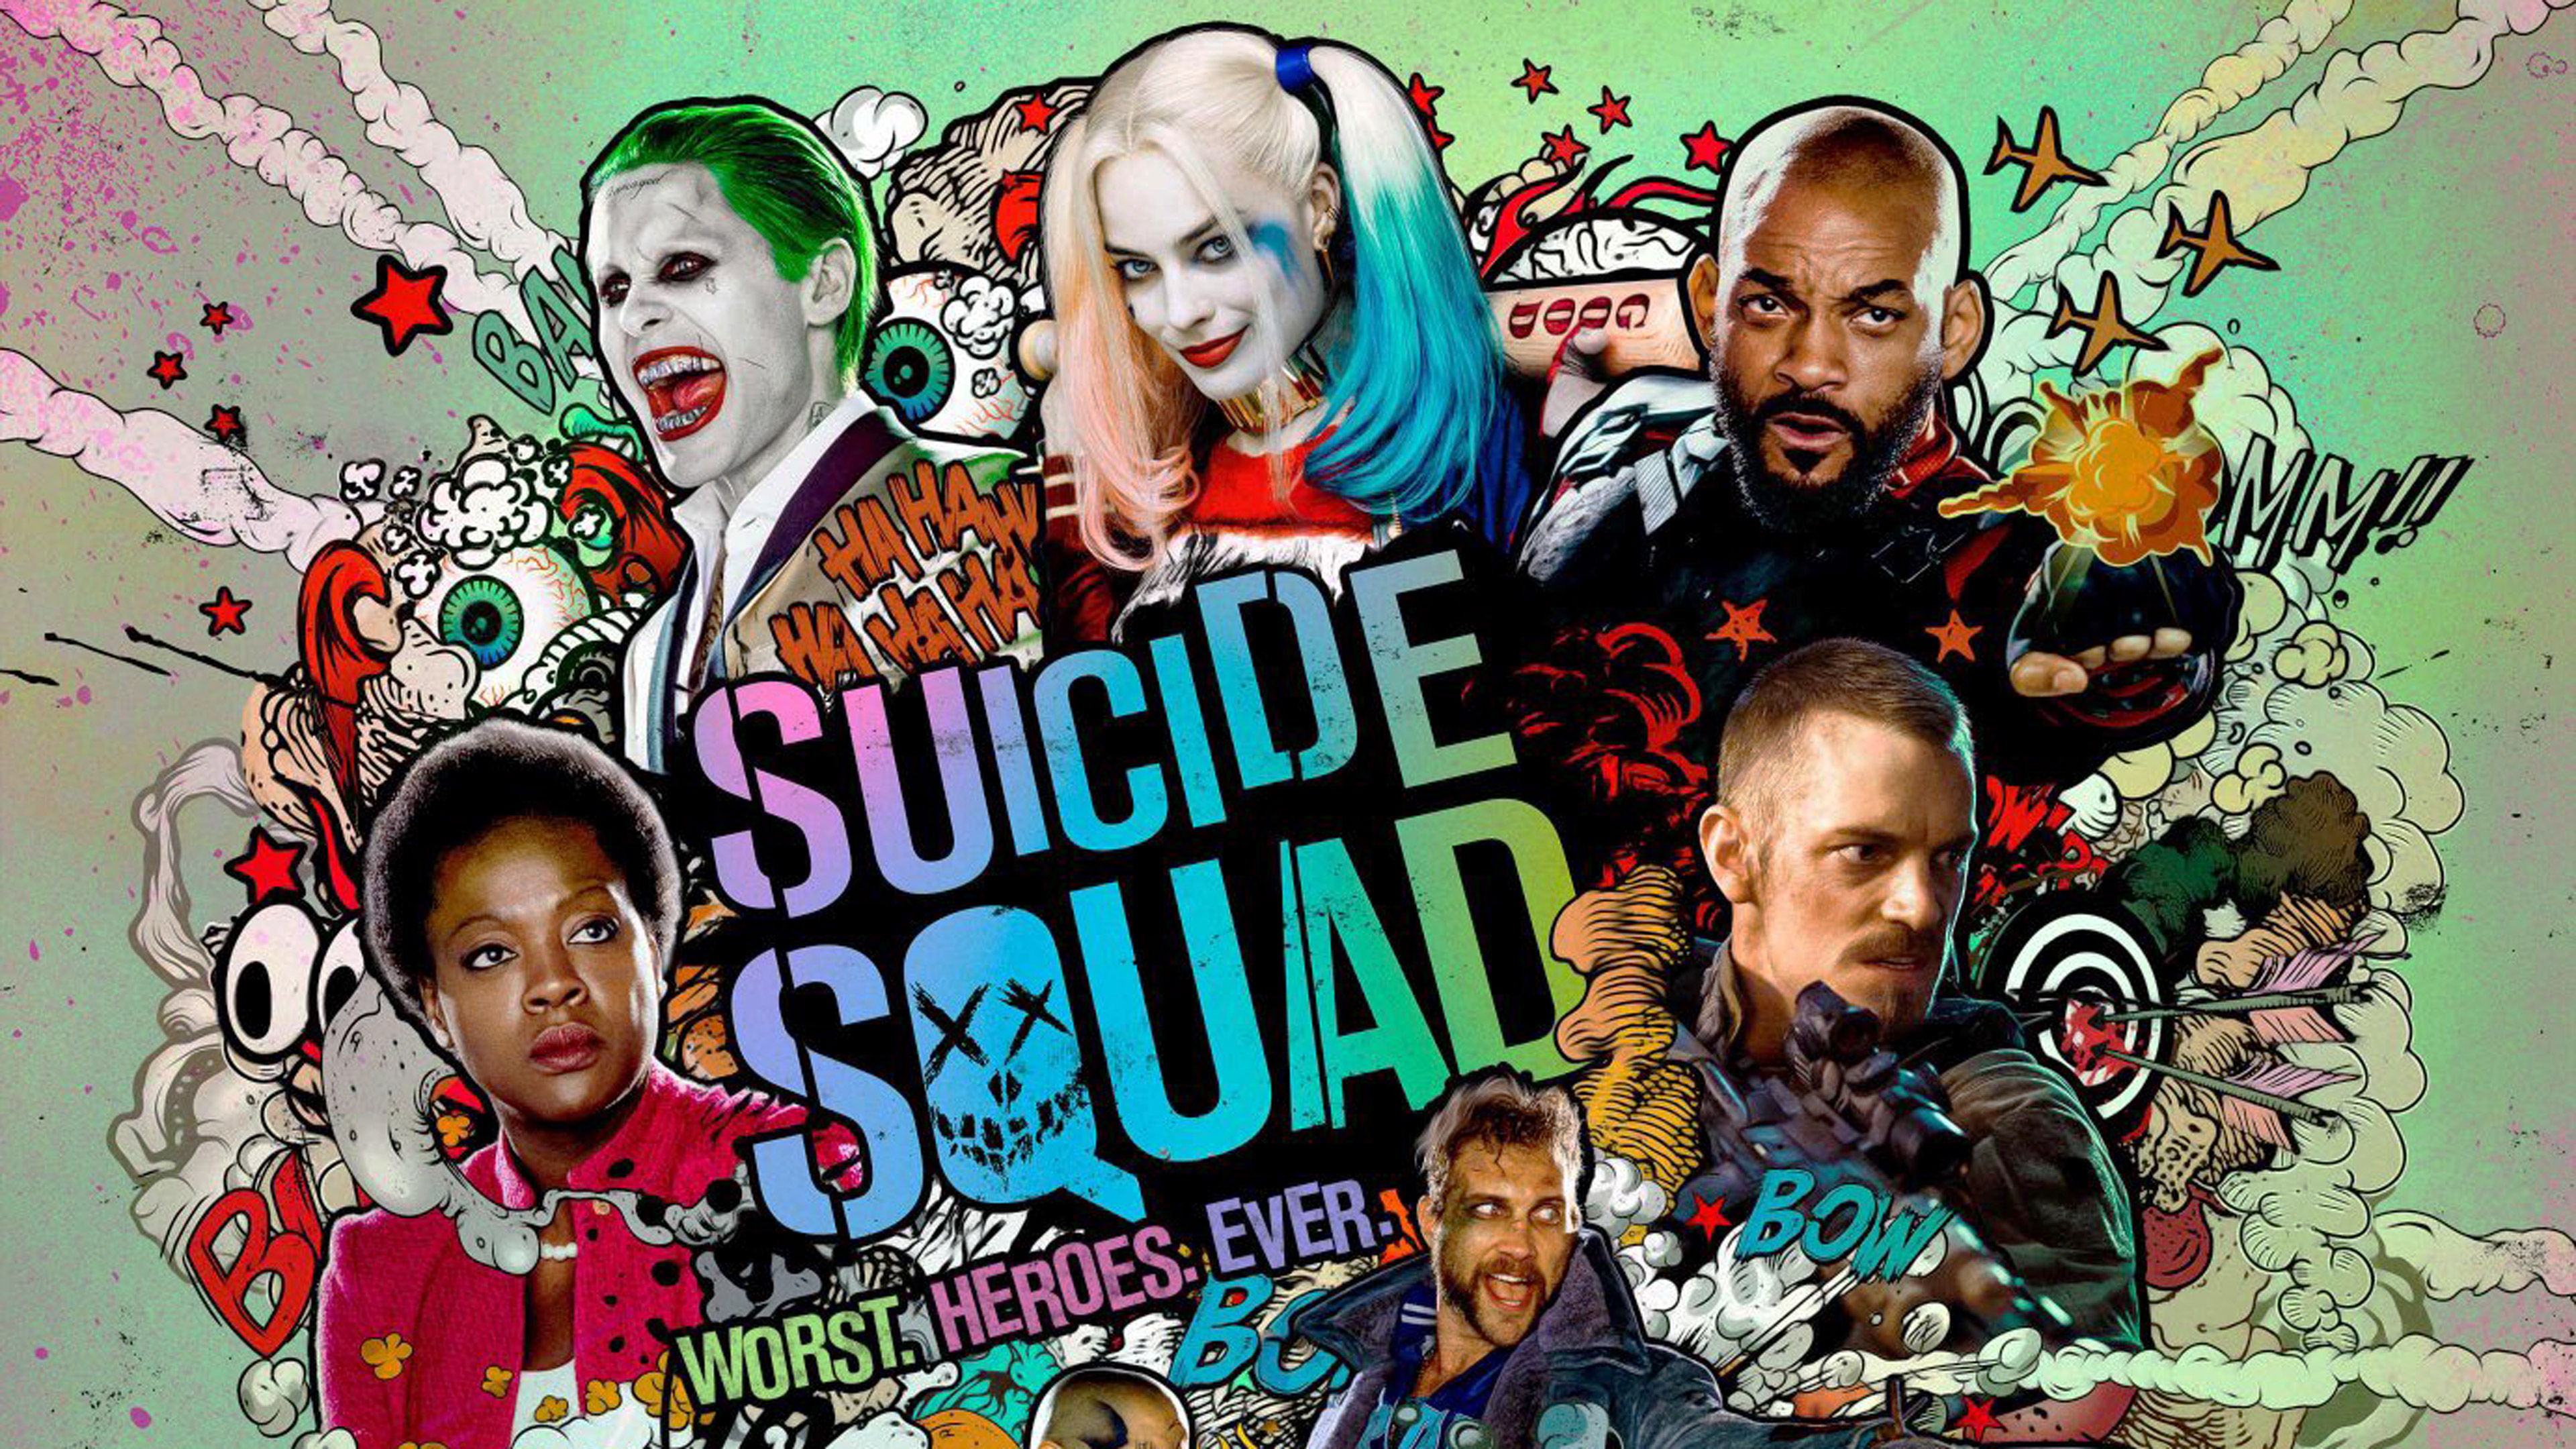 suicide squad poster 1536364127 - Suicide Squad Poster - suicide squad wallpapers, poster wallpapers, movies wallpapers, 2016 movies wallpapers